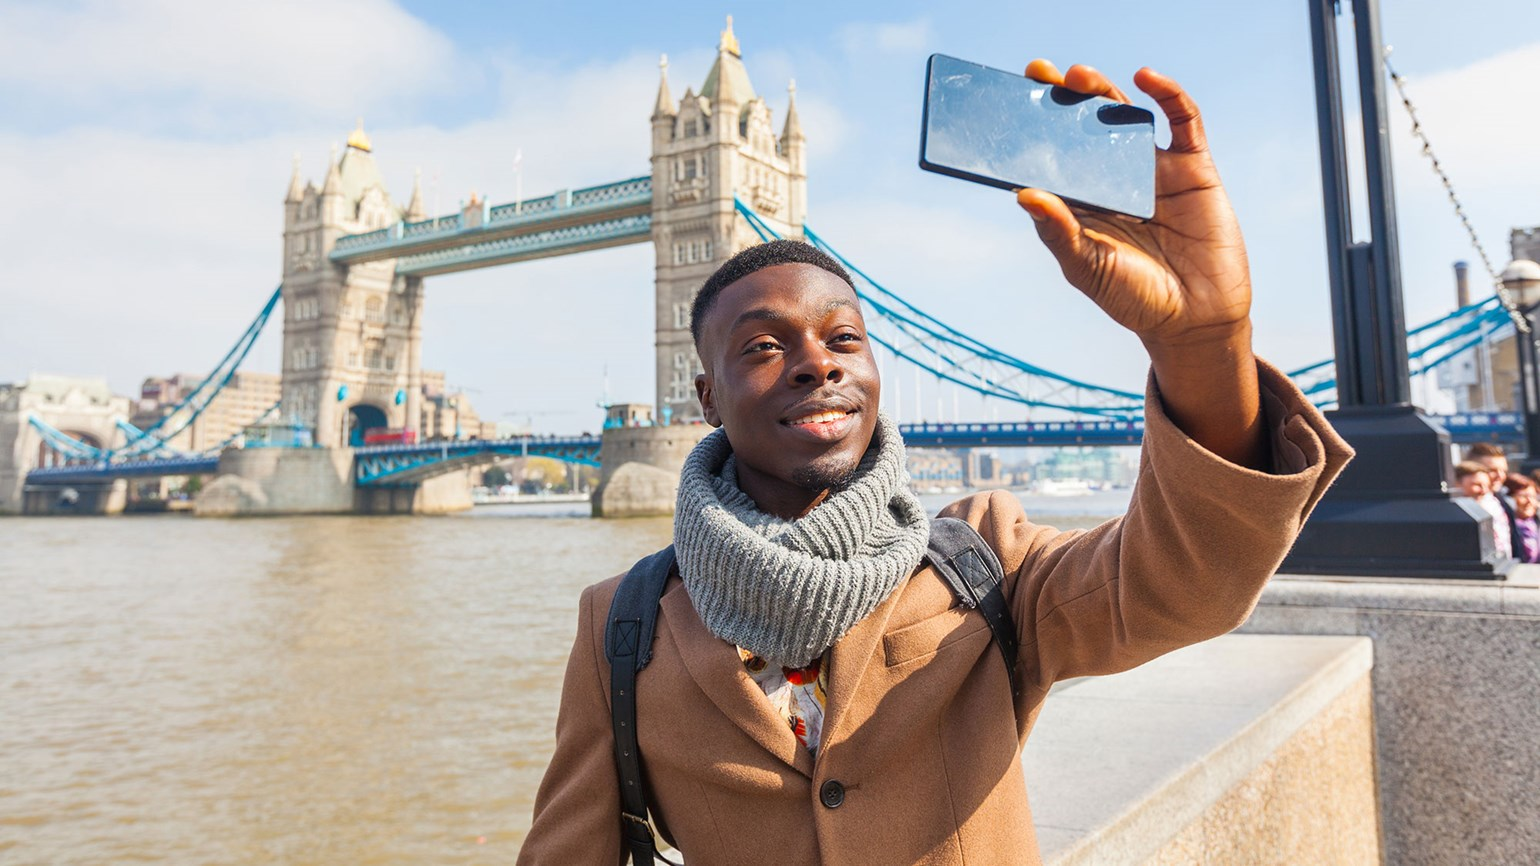 Black traveler tourist London [Credit: William Perugini/Shutterstock.com]